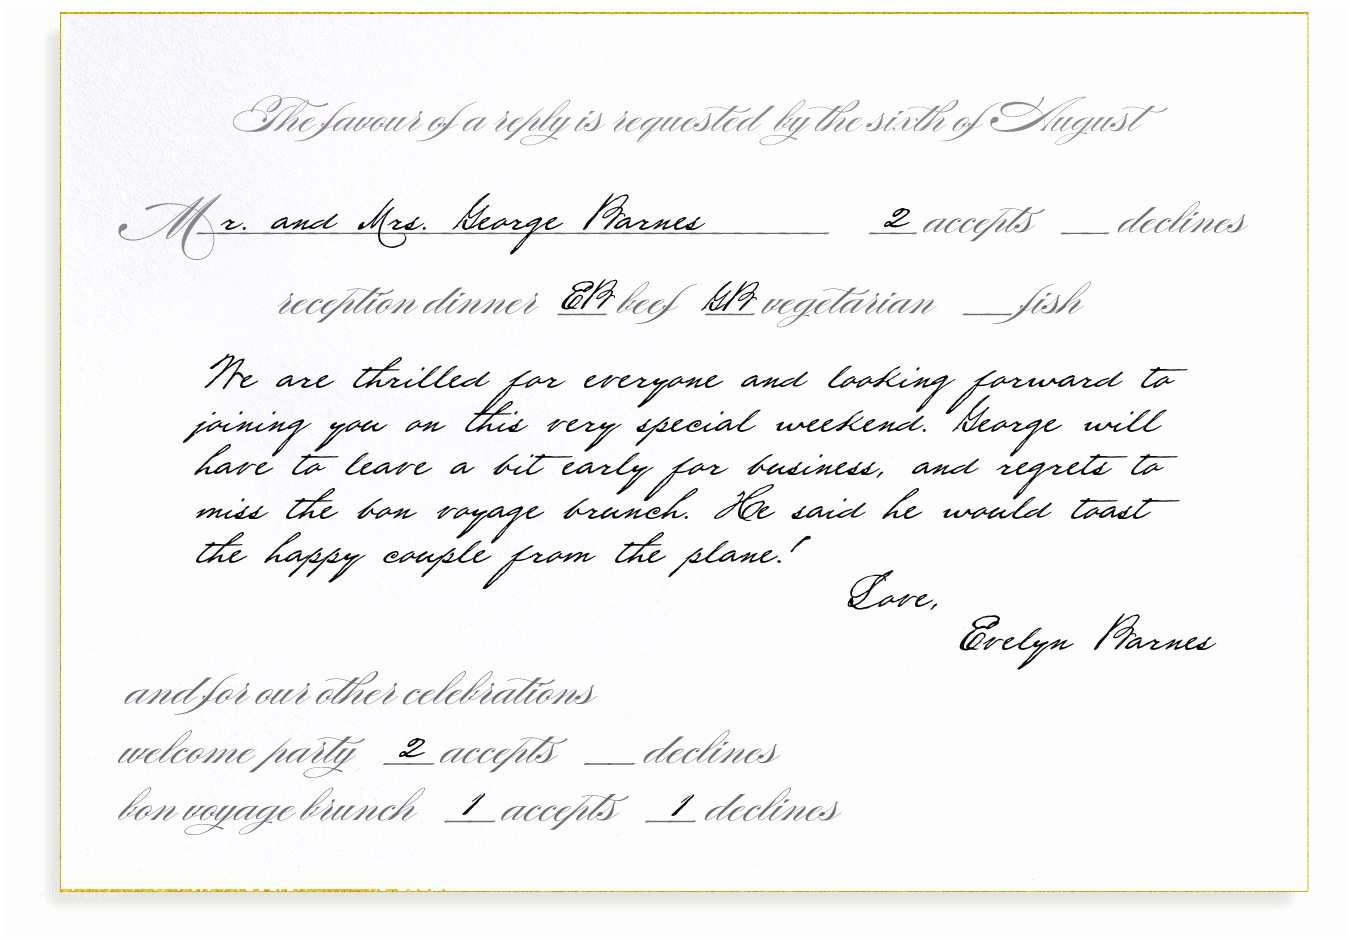 How to Rsvp for Wedding Invitation Rsvp Etiquette Traditional Favor Dinner Options with